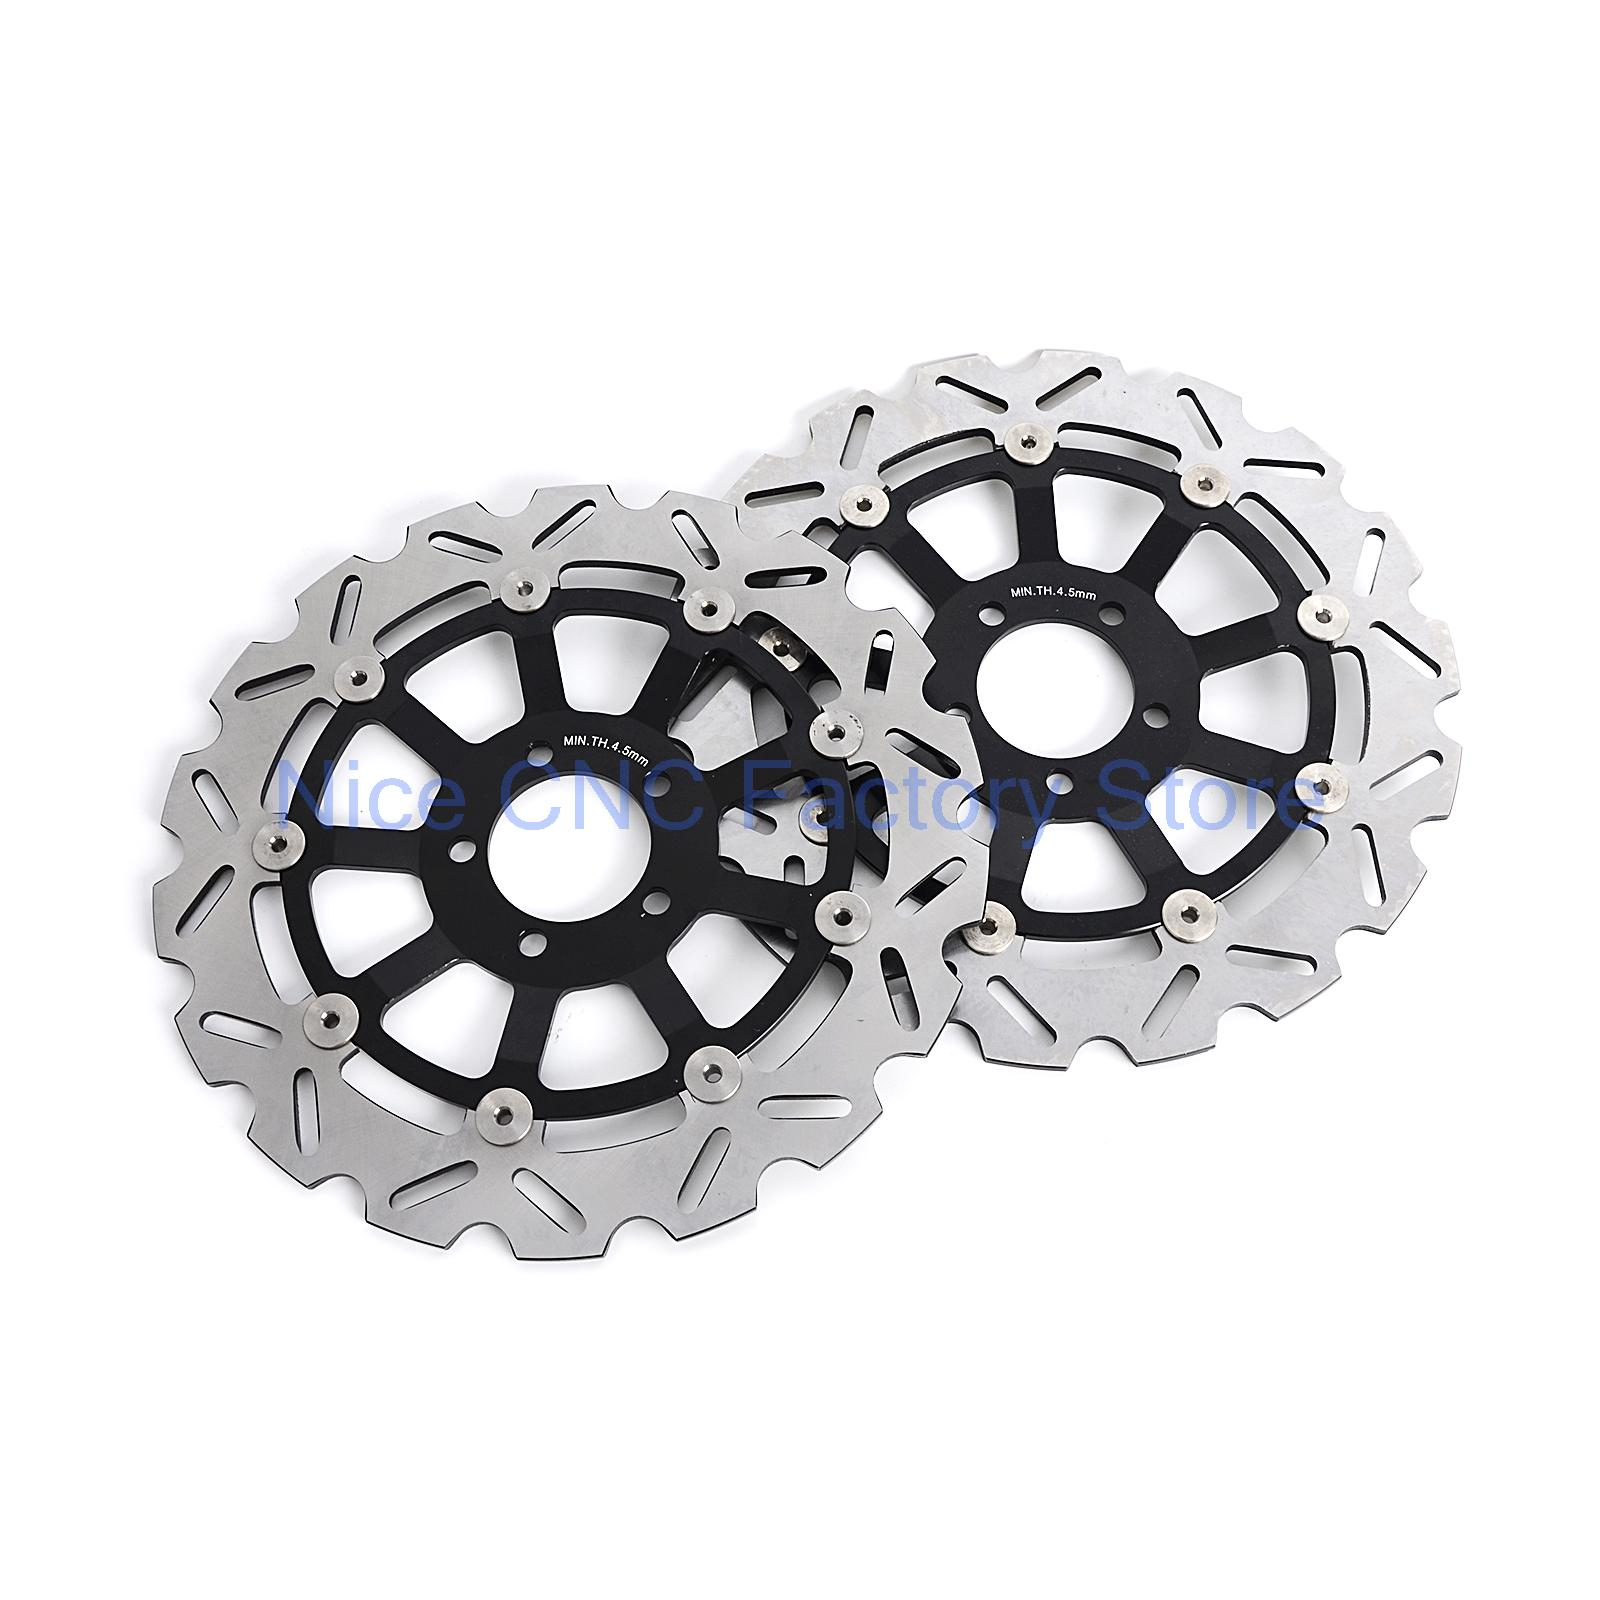 2 Pcs Motorcycle Floating Front Brake Disc Rotor For Kawasaki ZXR750 H1-H2   ZX9R ZR1100 ZZR1100 ZRX1100 ZX1200 NEW цены онлайн